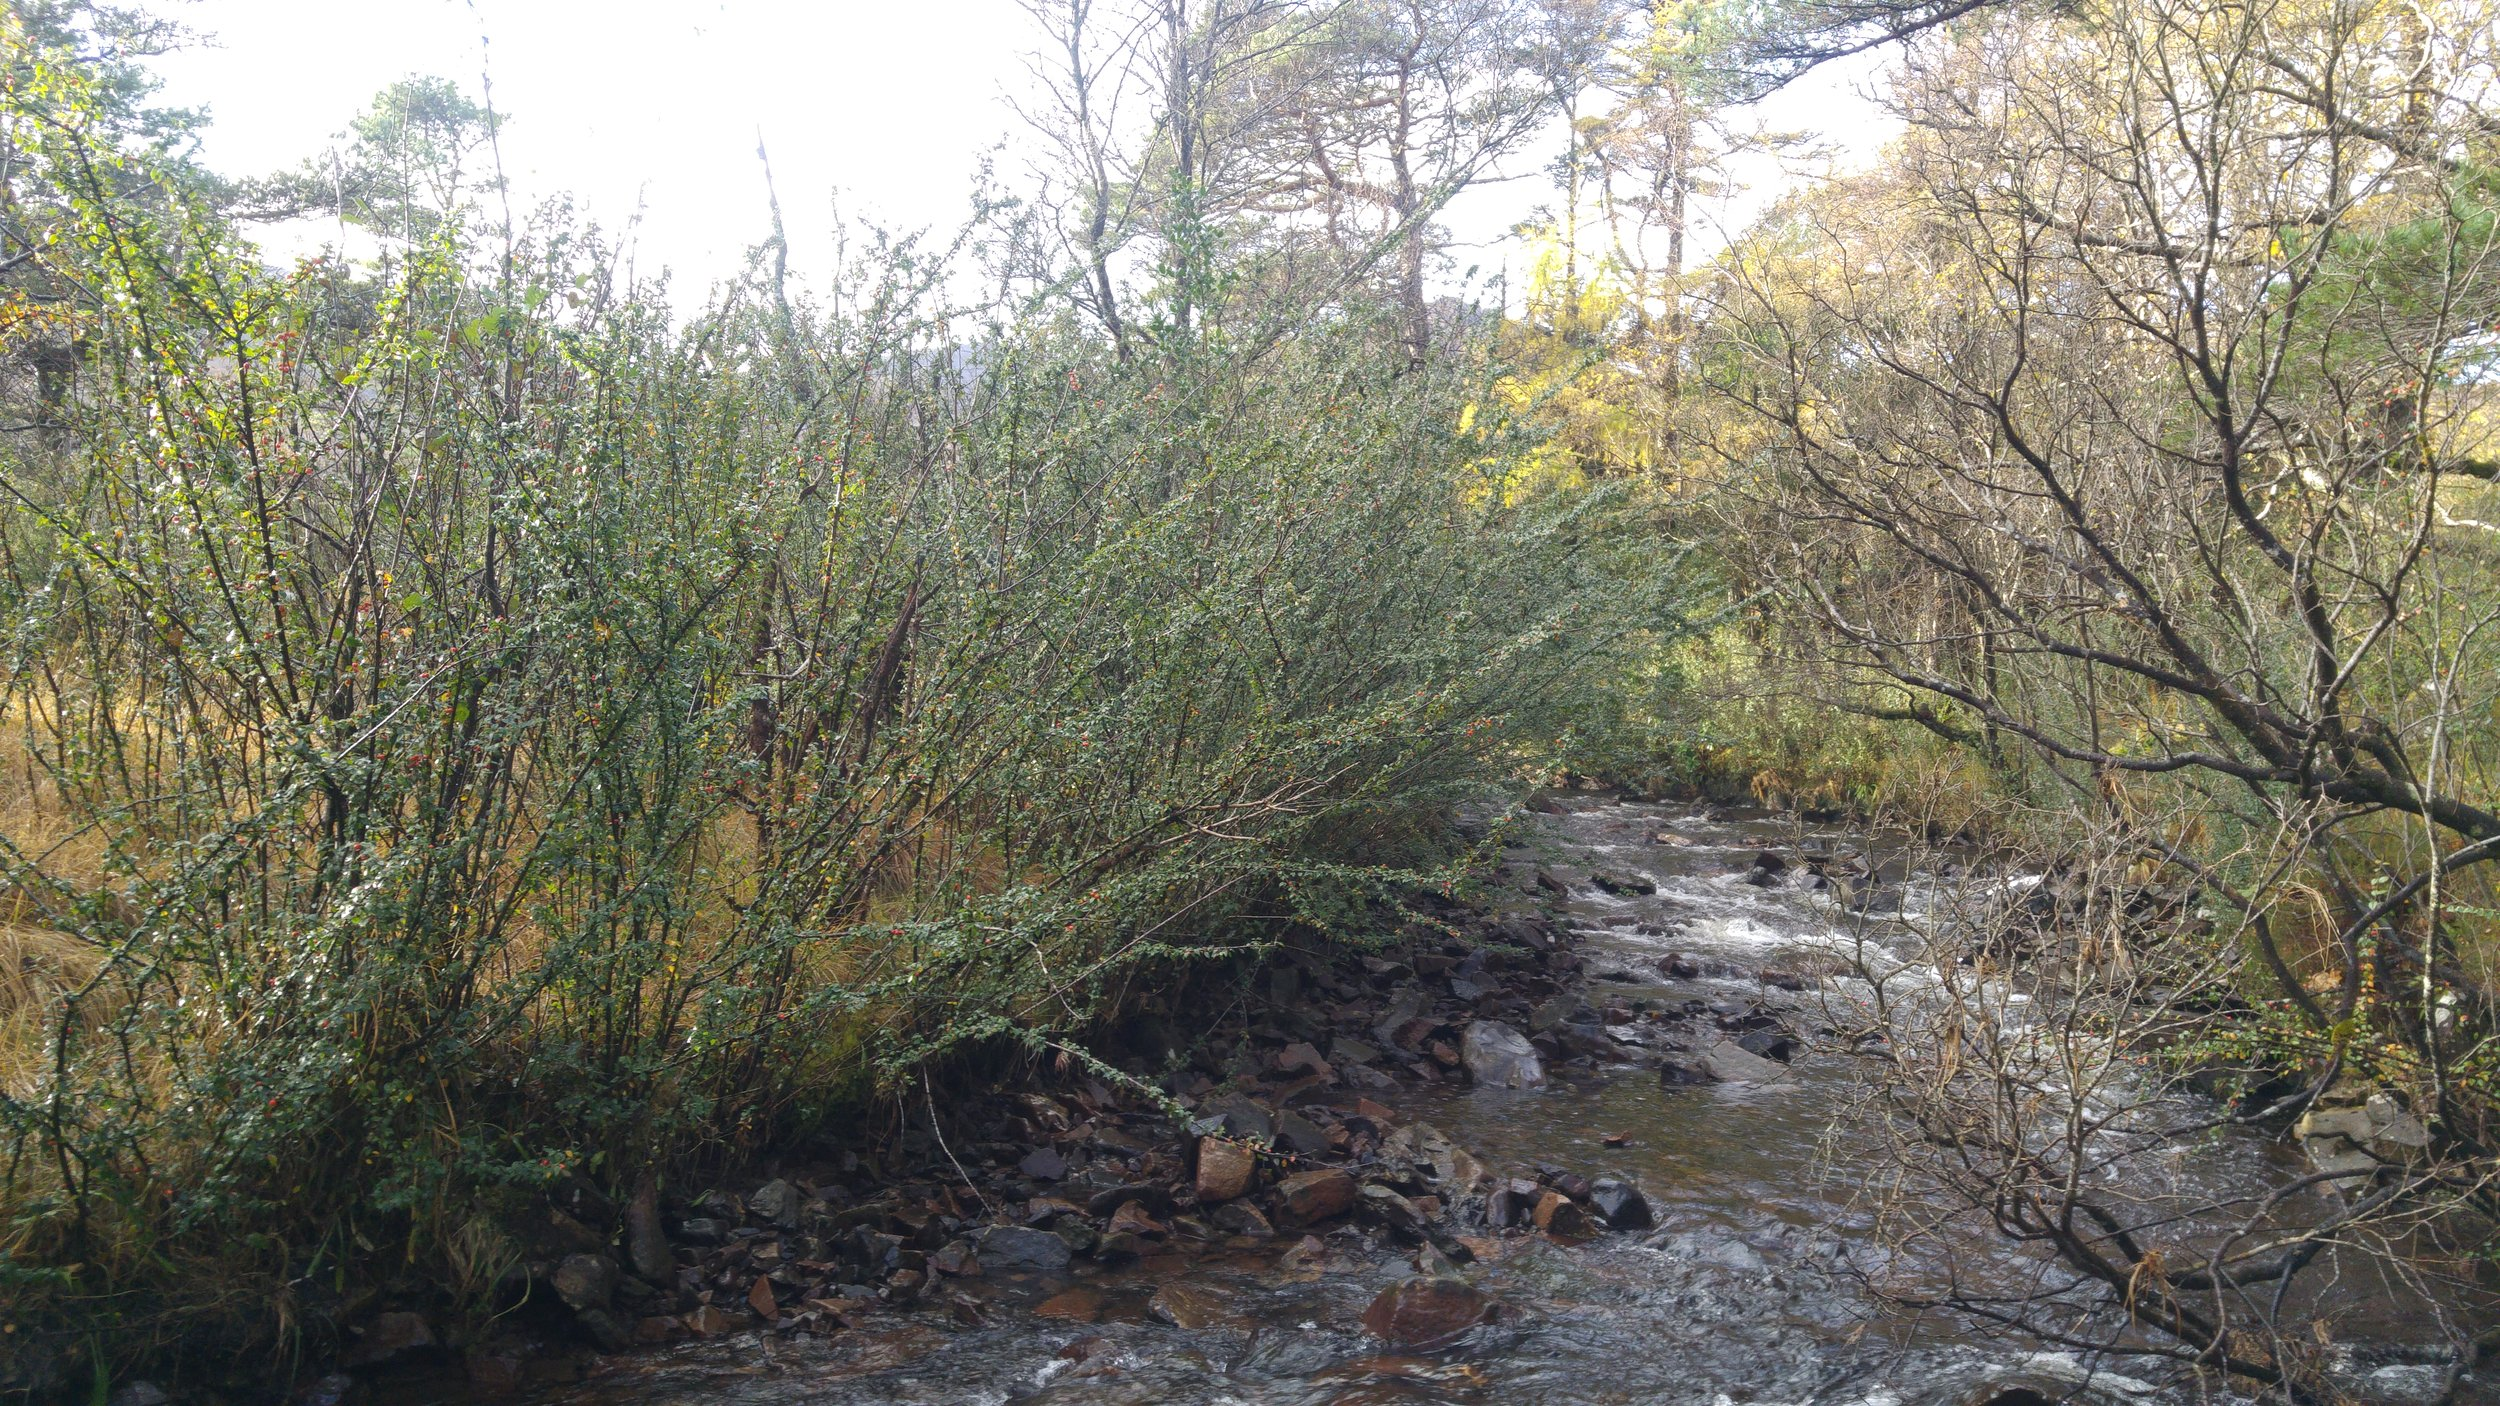 More cotoneaster. This time, I stand of plants in a riparian setting. I wondered whether upstream bushes had been the source of seed for these plants, as indeed they probably now are for younger plants growing further downstream.